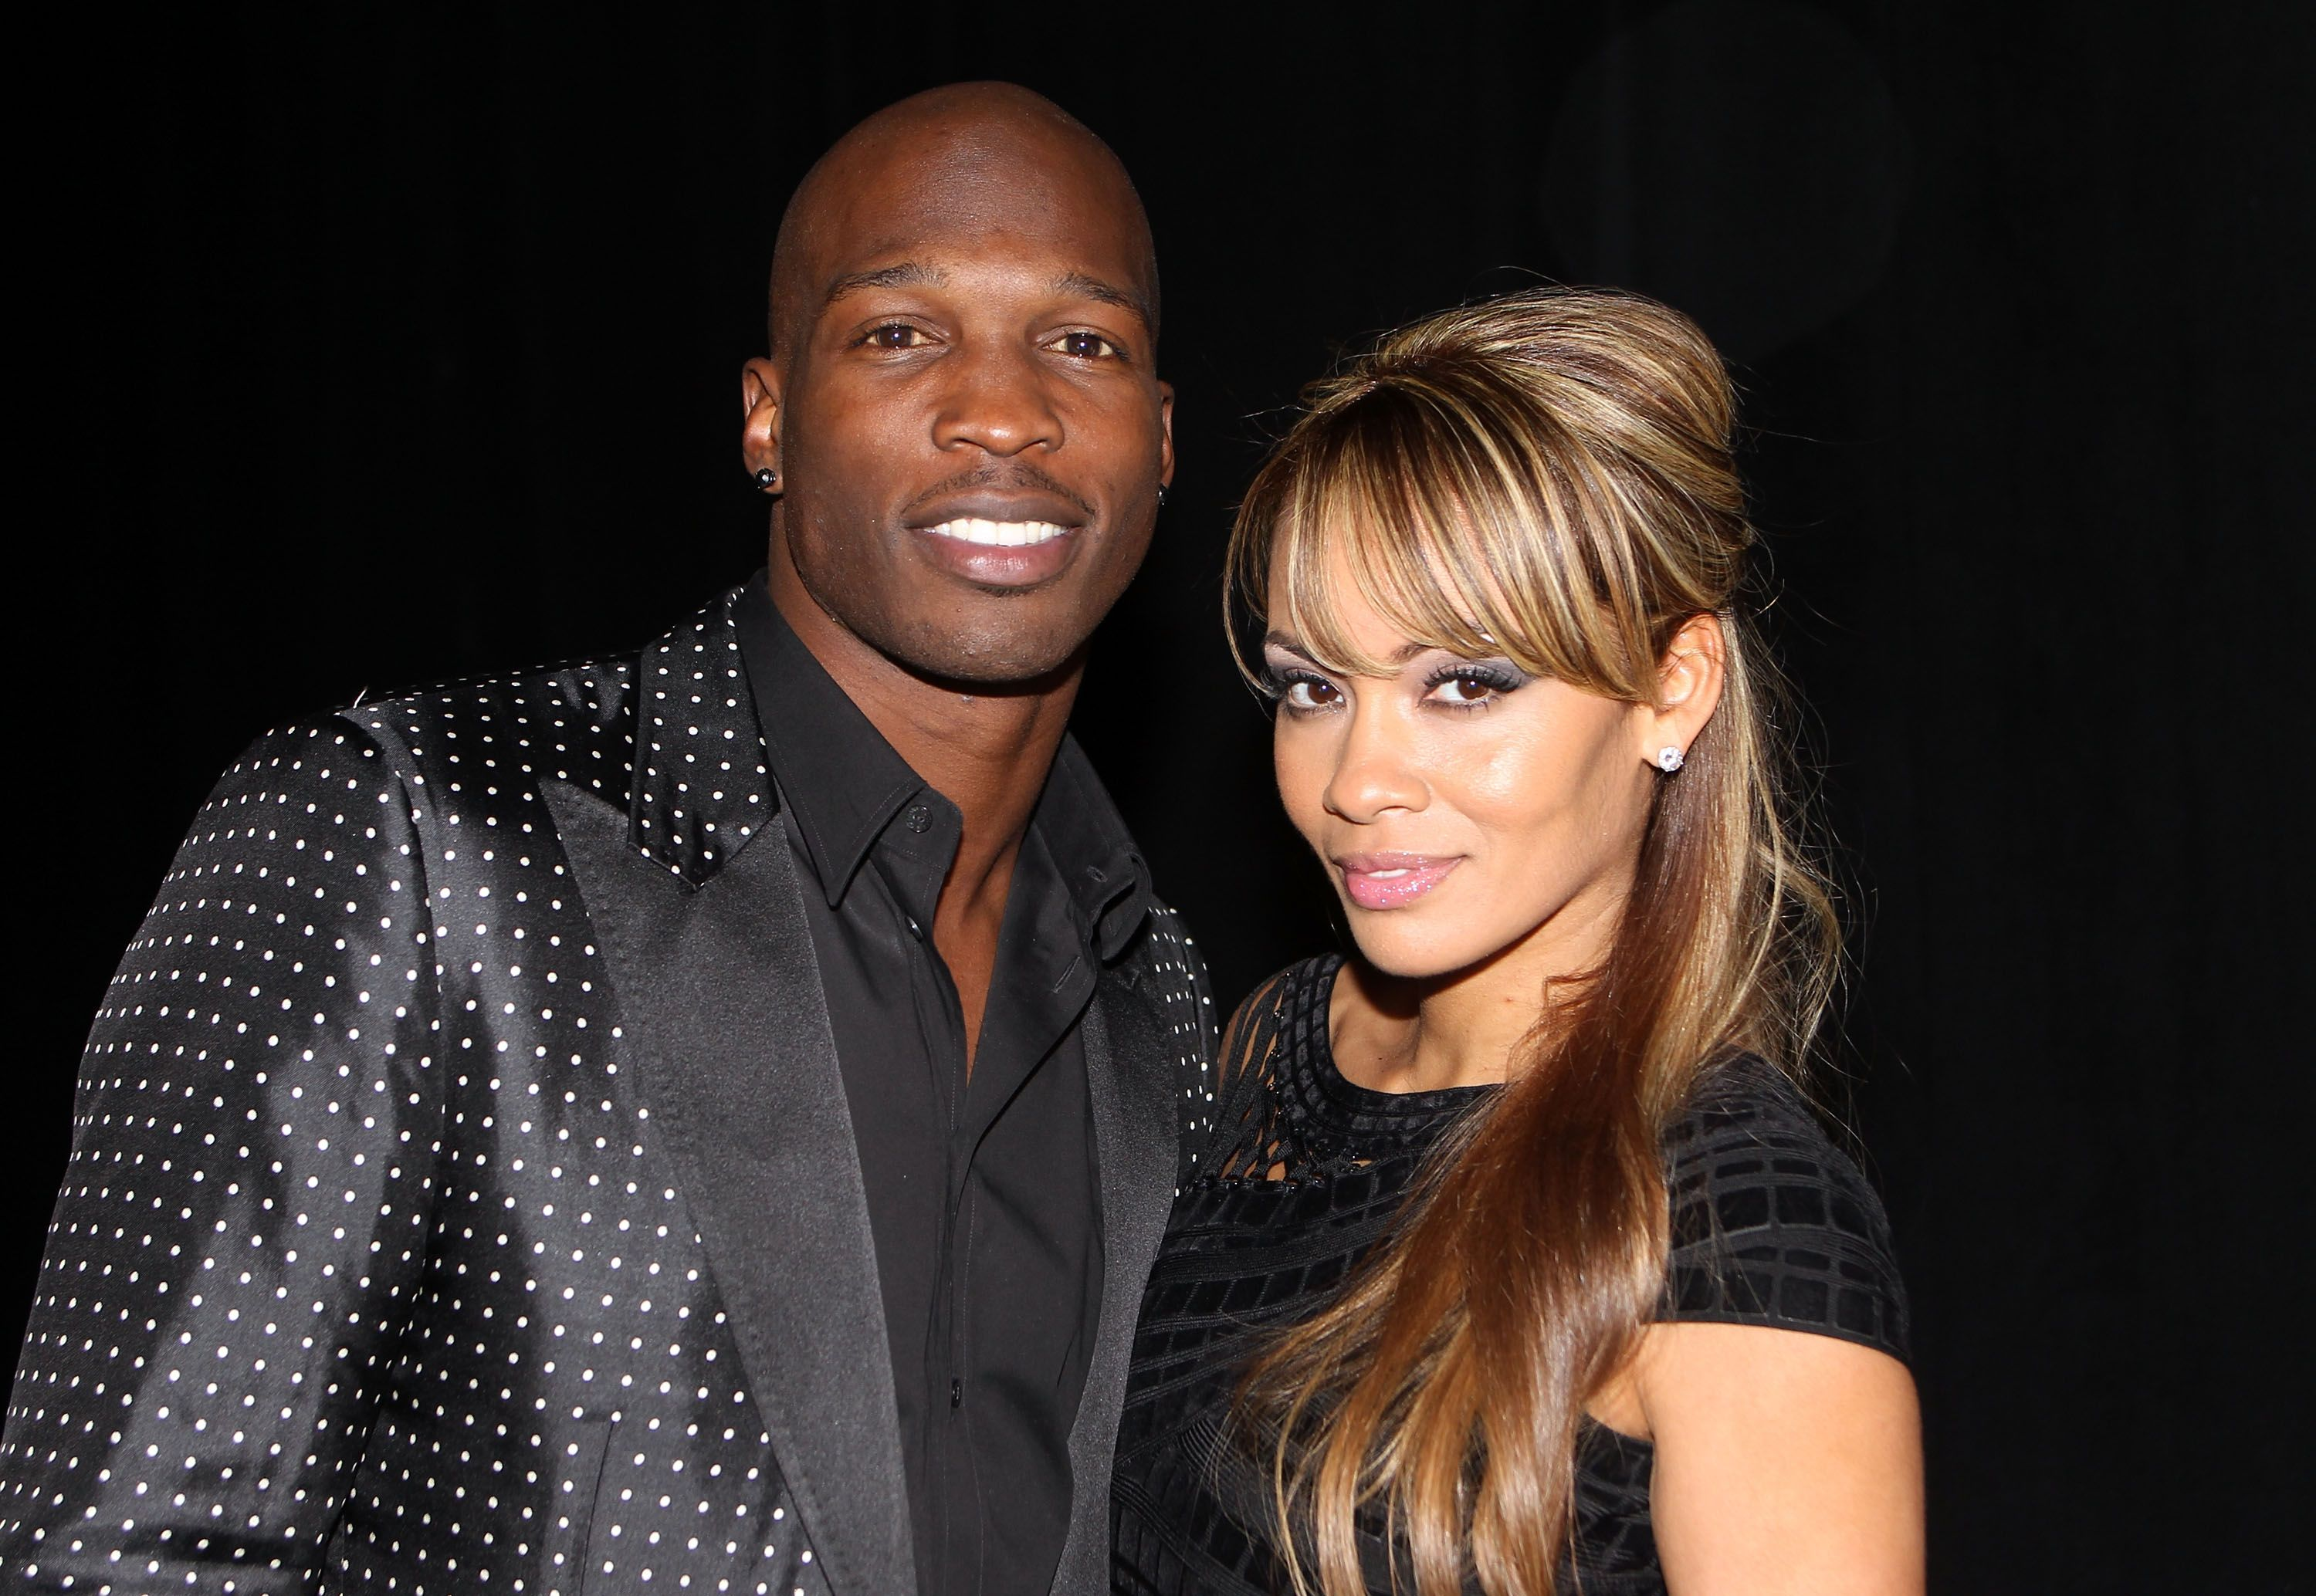 NFL player Chad Johnson and Evelyn Lozada at the Maxim Party in 2011 in Dallas Texas | Source: Getty Images